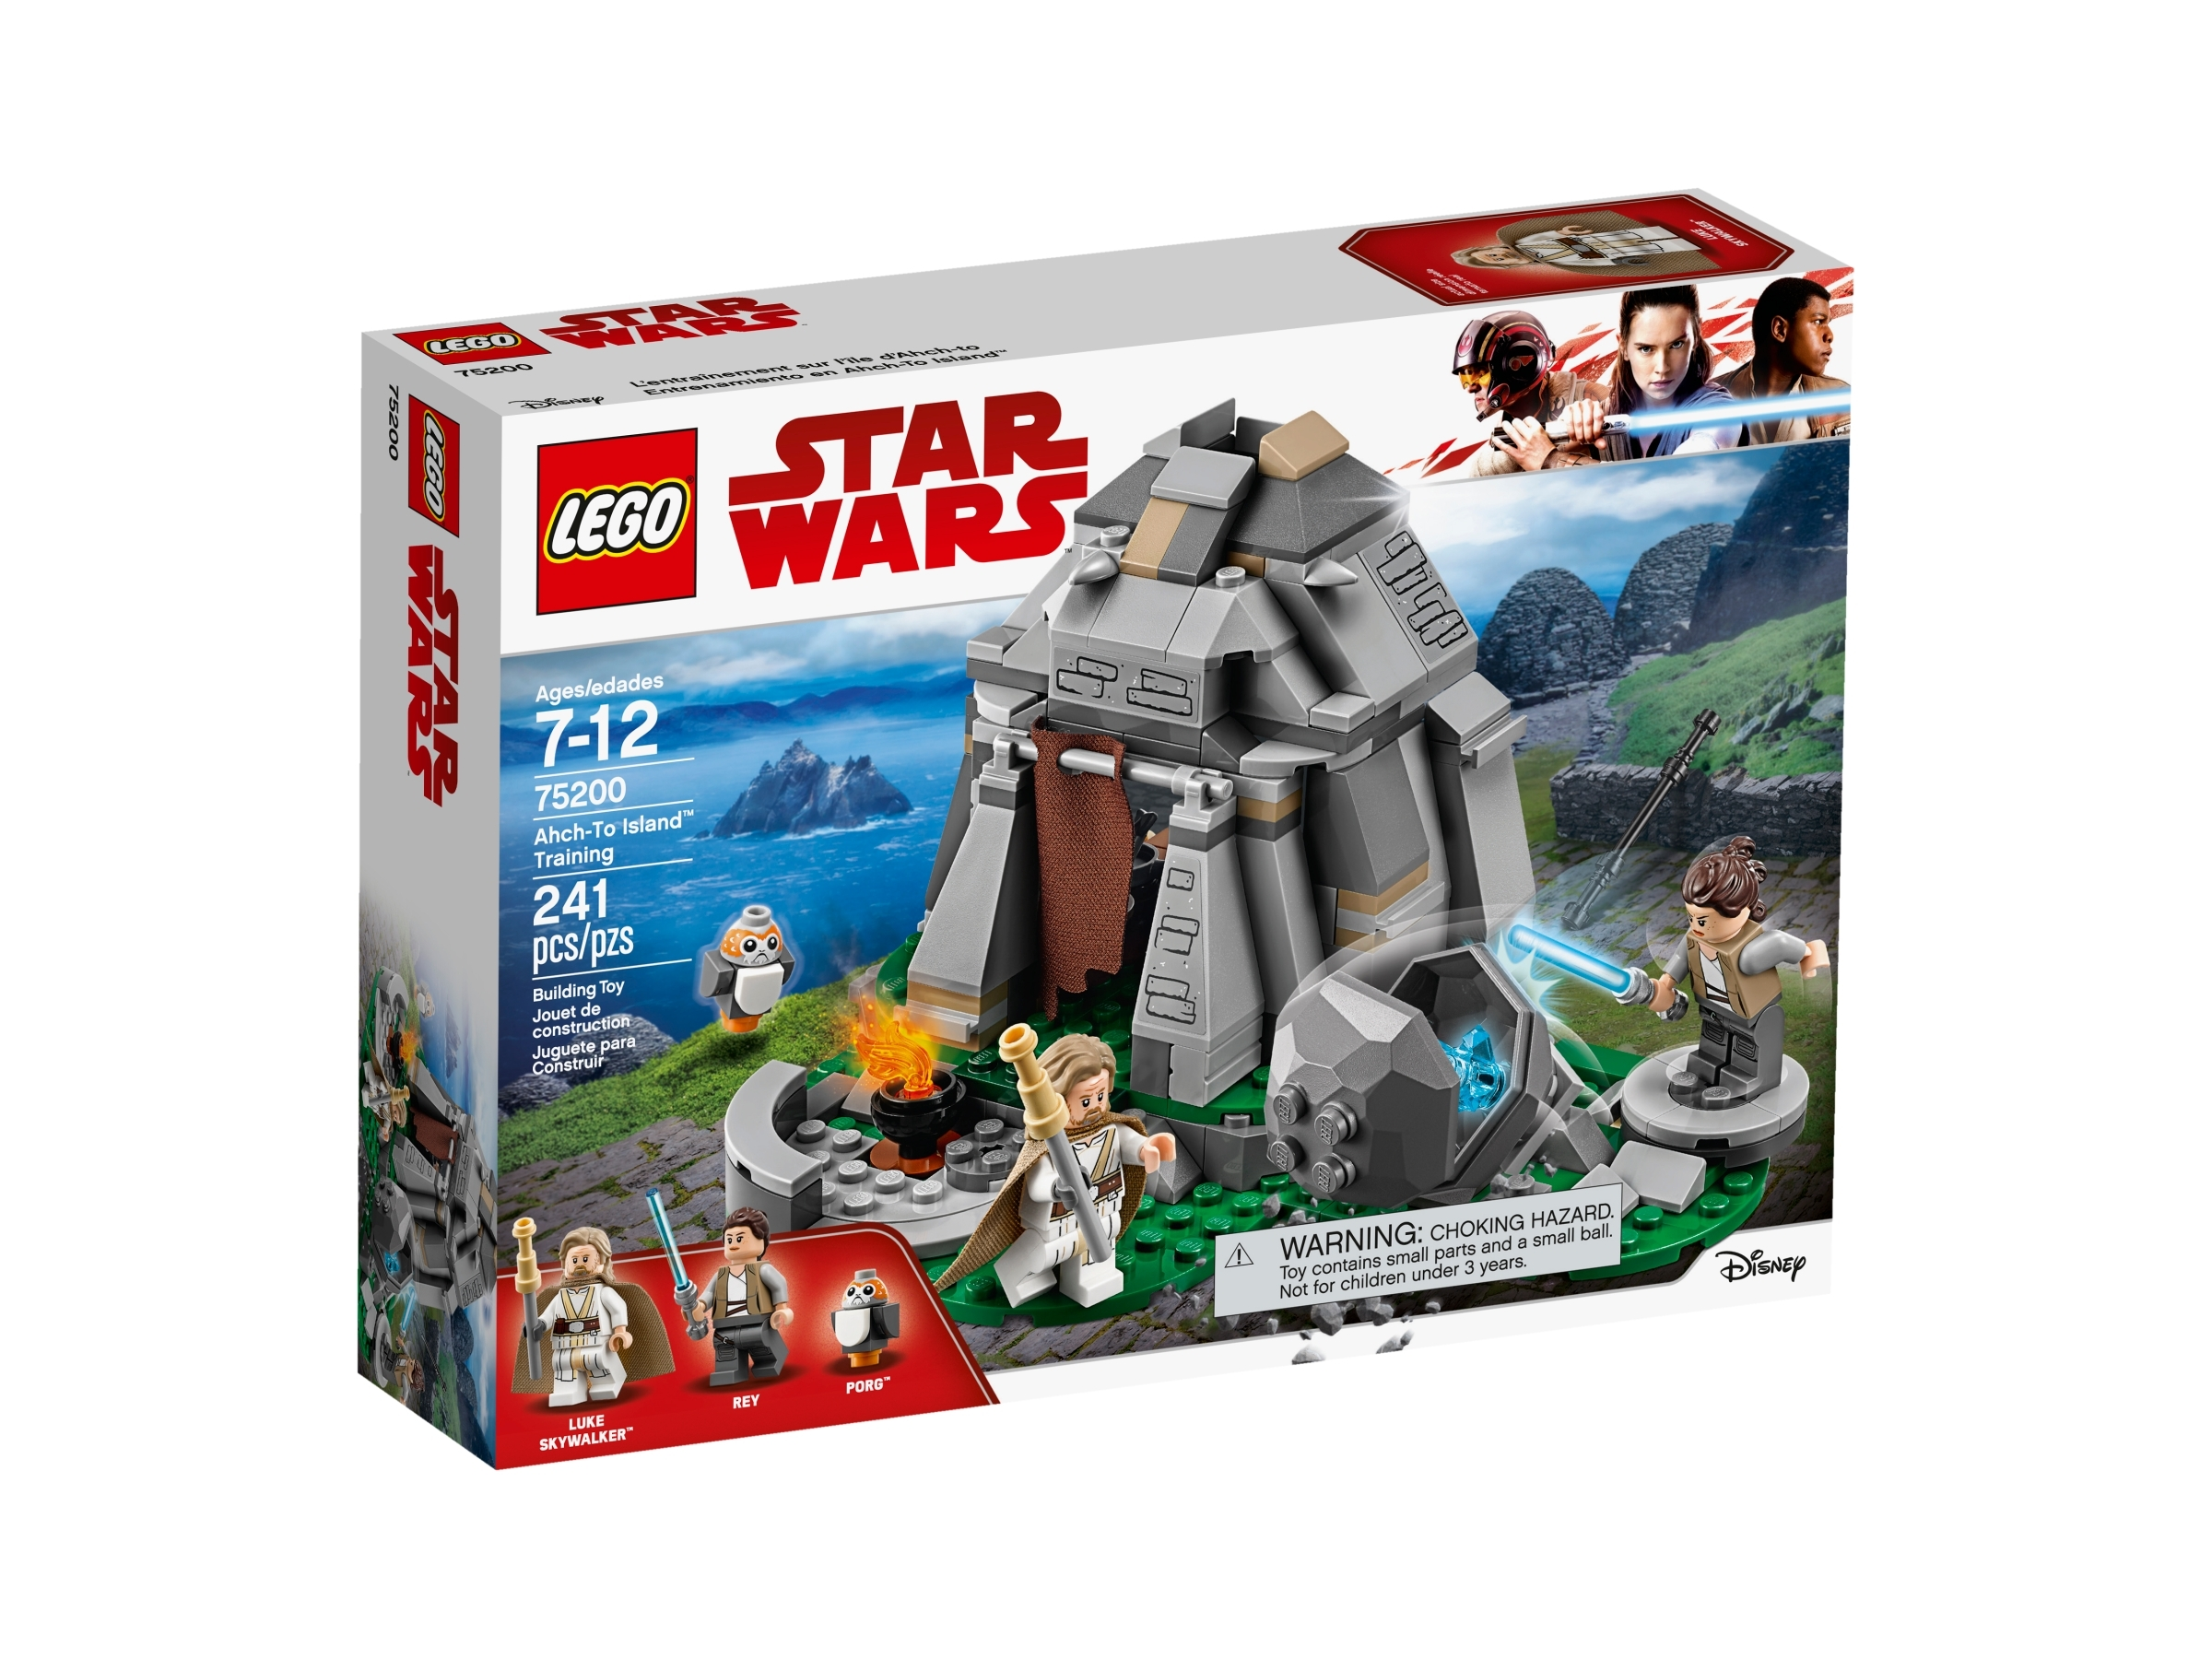 Ahch To Island Training 75200 Star Wars Buy Online At The Official Lego Shop Us